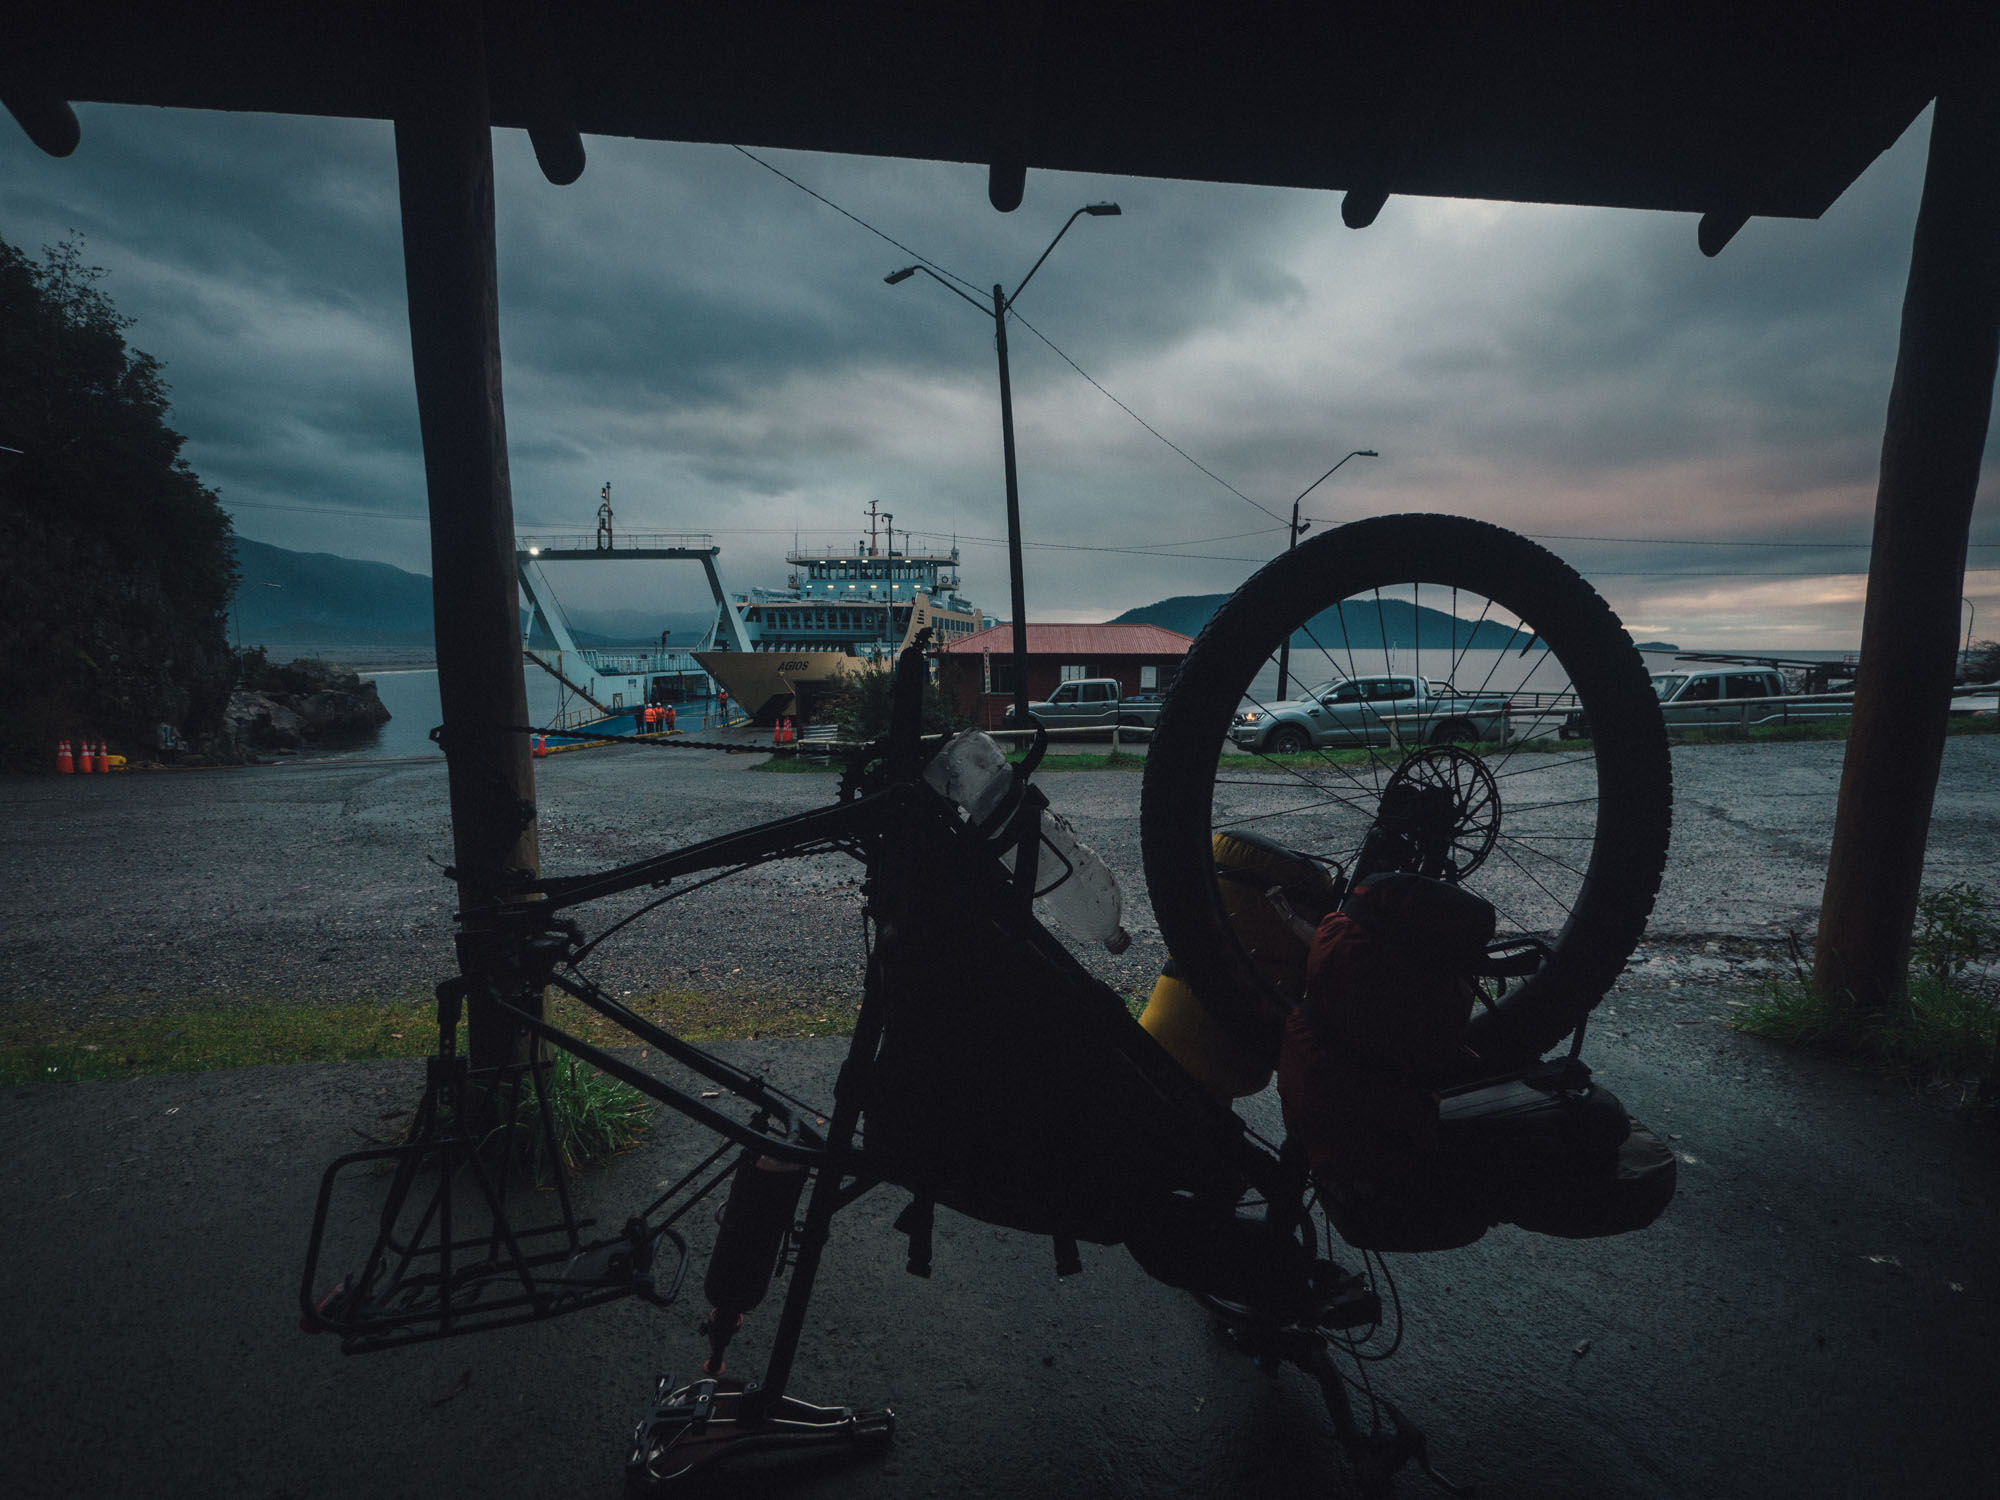 Fixing a puncture after arriving in Chaitén